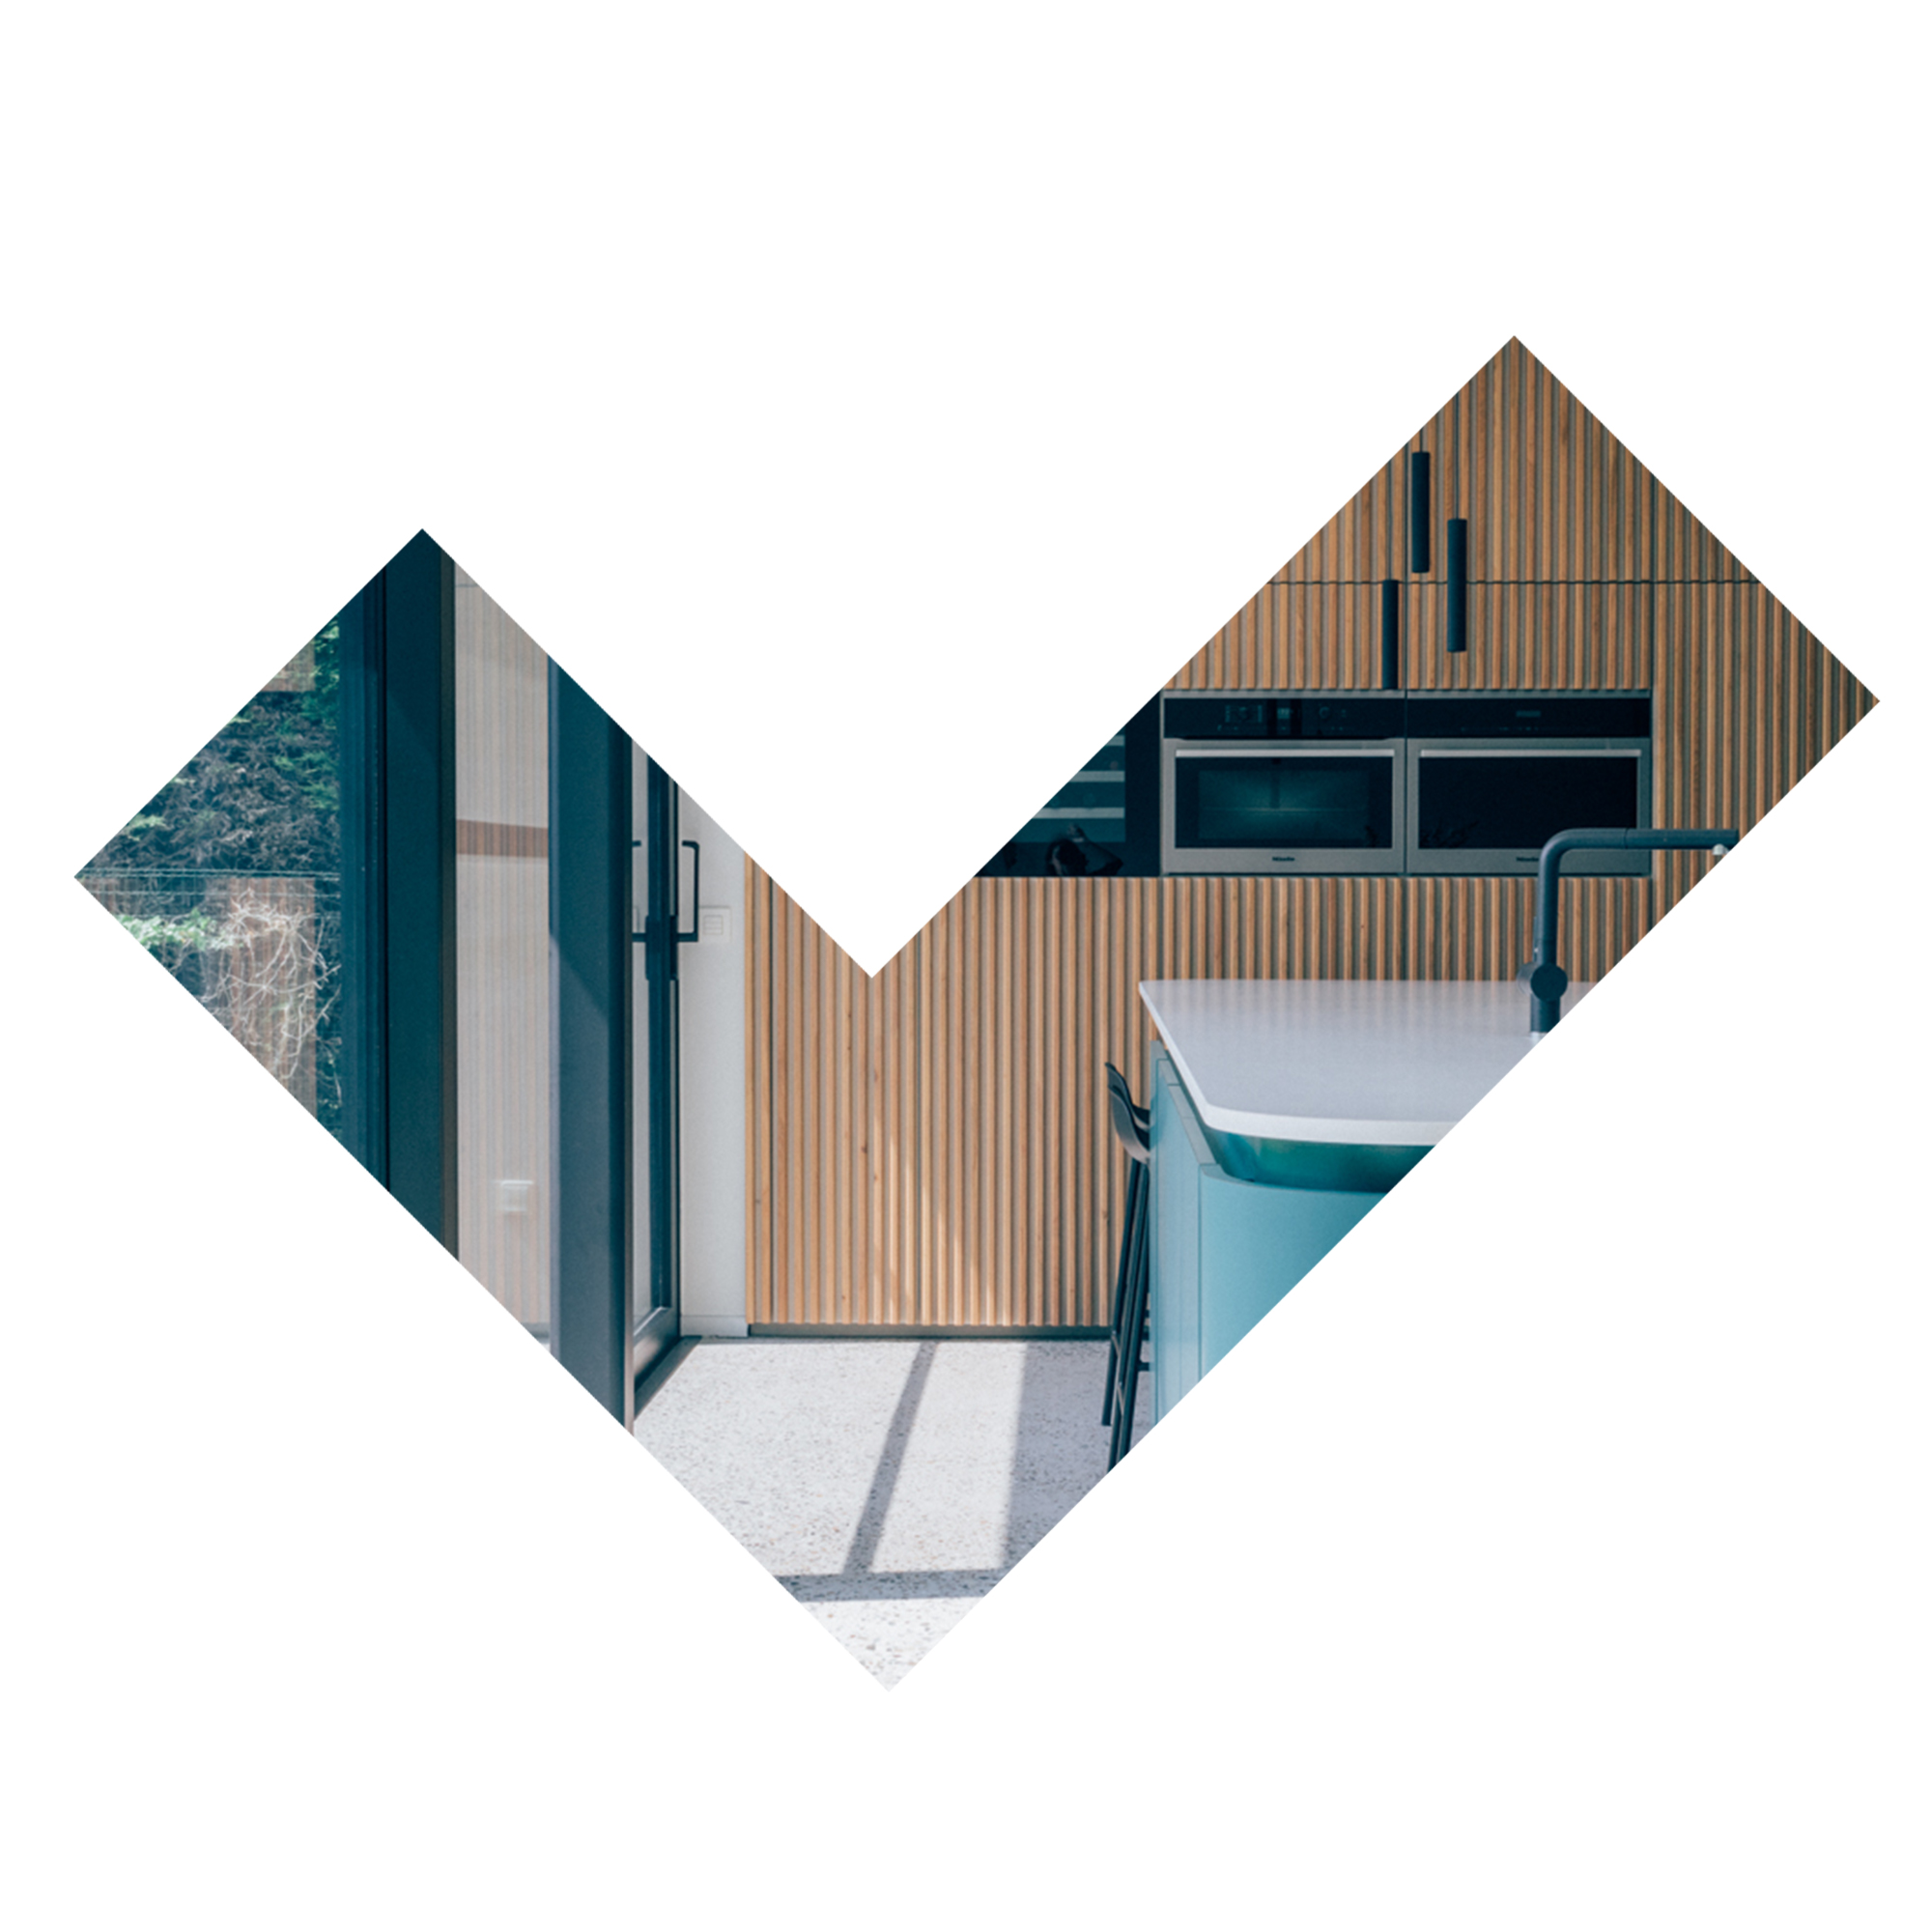 COLOUR IN THE HOUSE - A residential project featuring sober and elegant materials combined with a touch of colour.Collaboration with espoo.